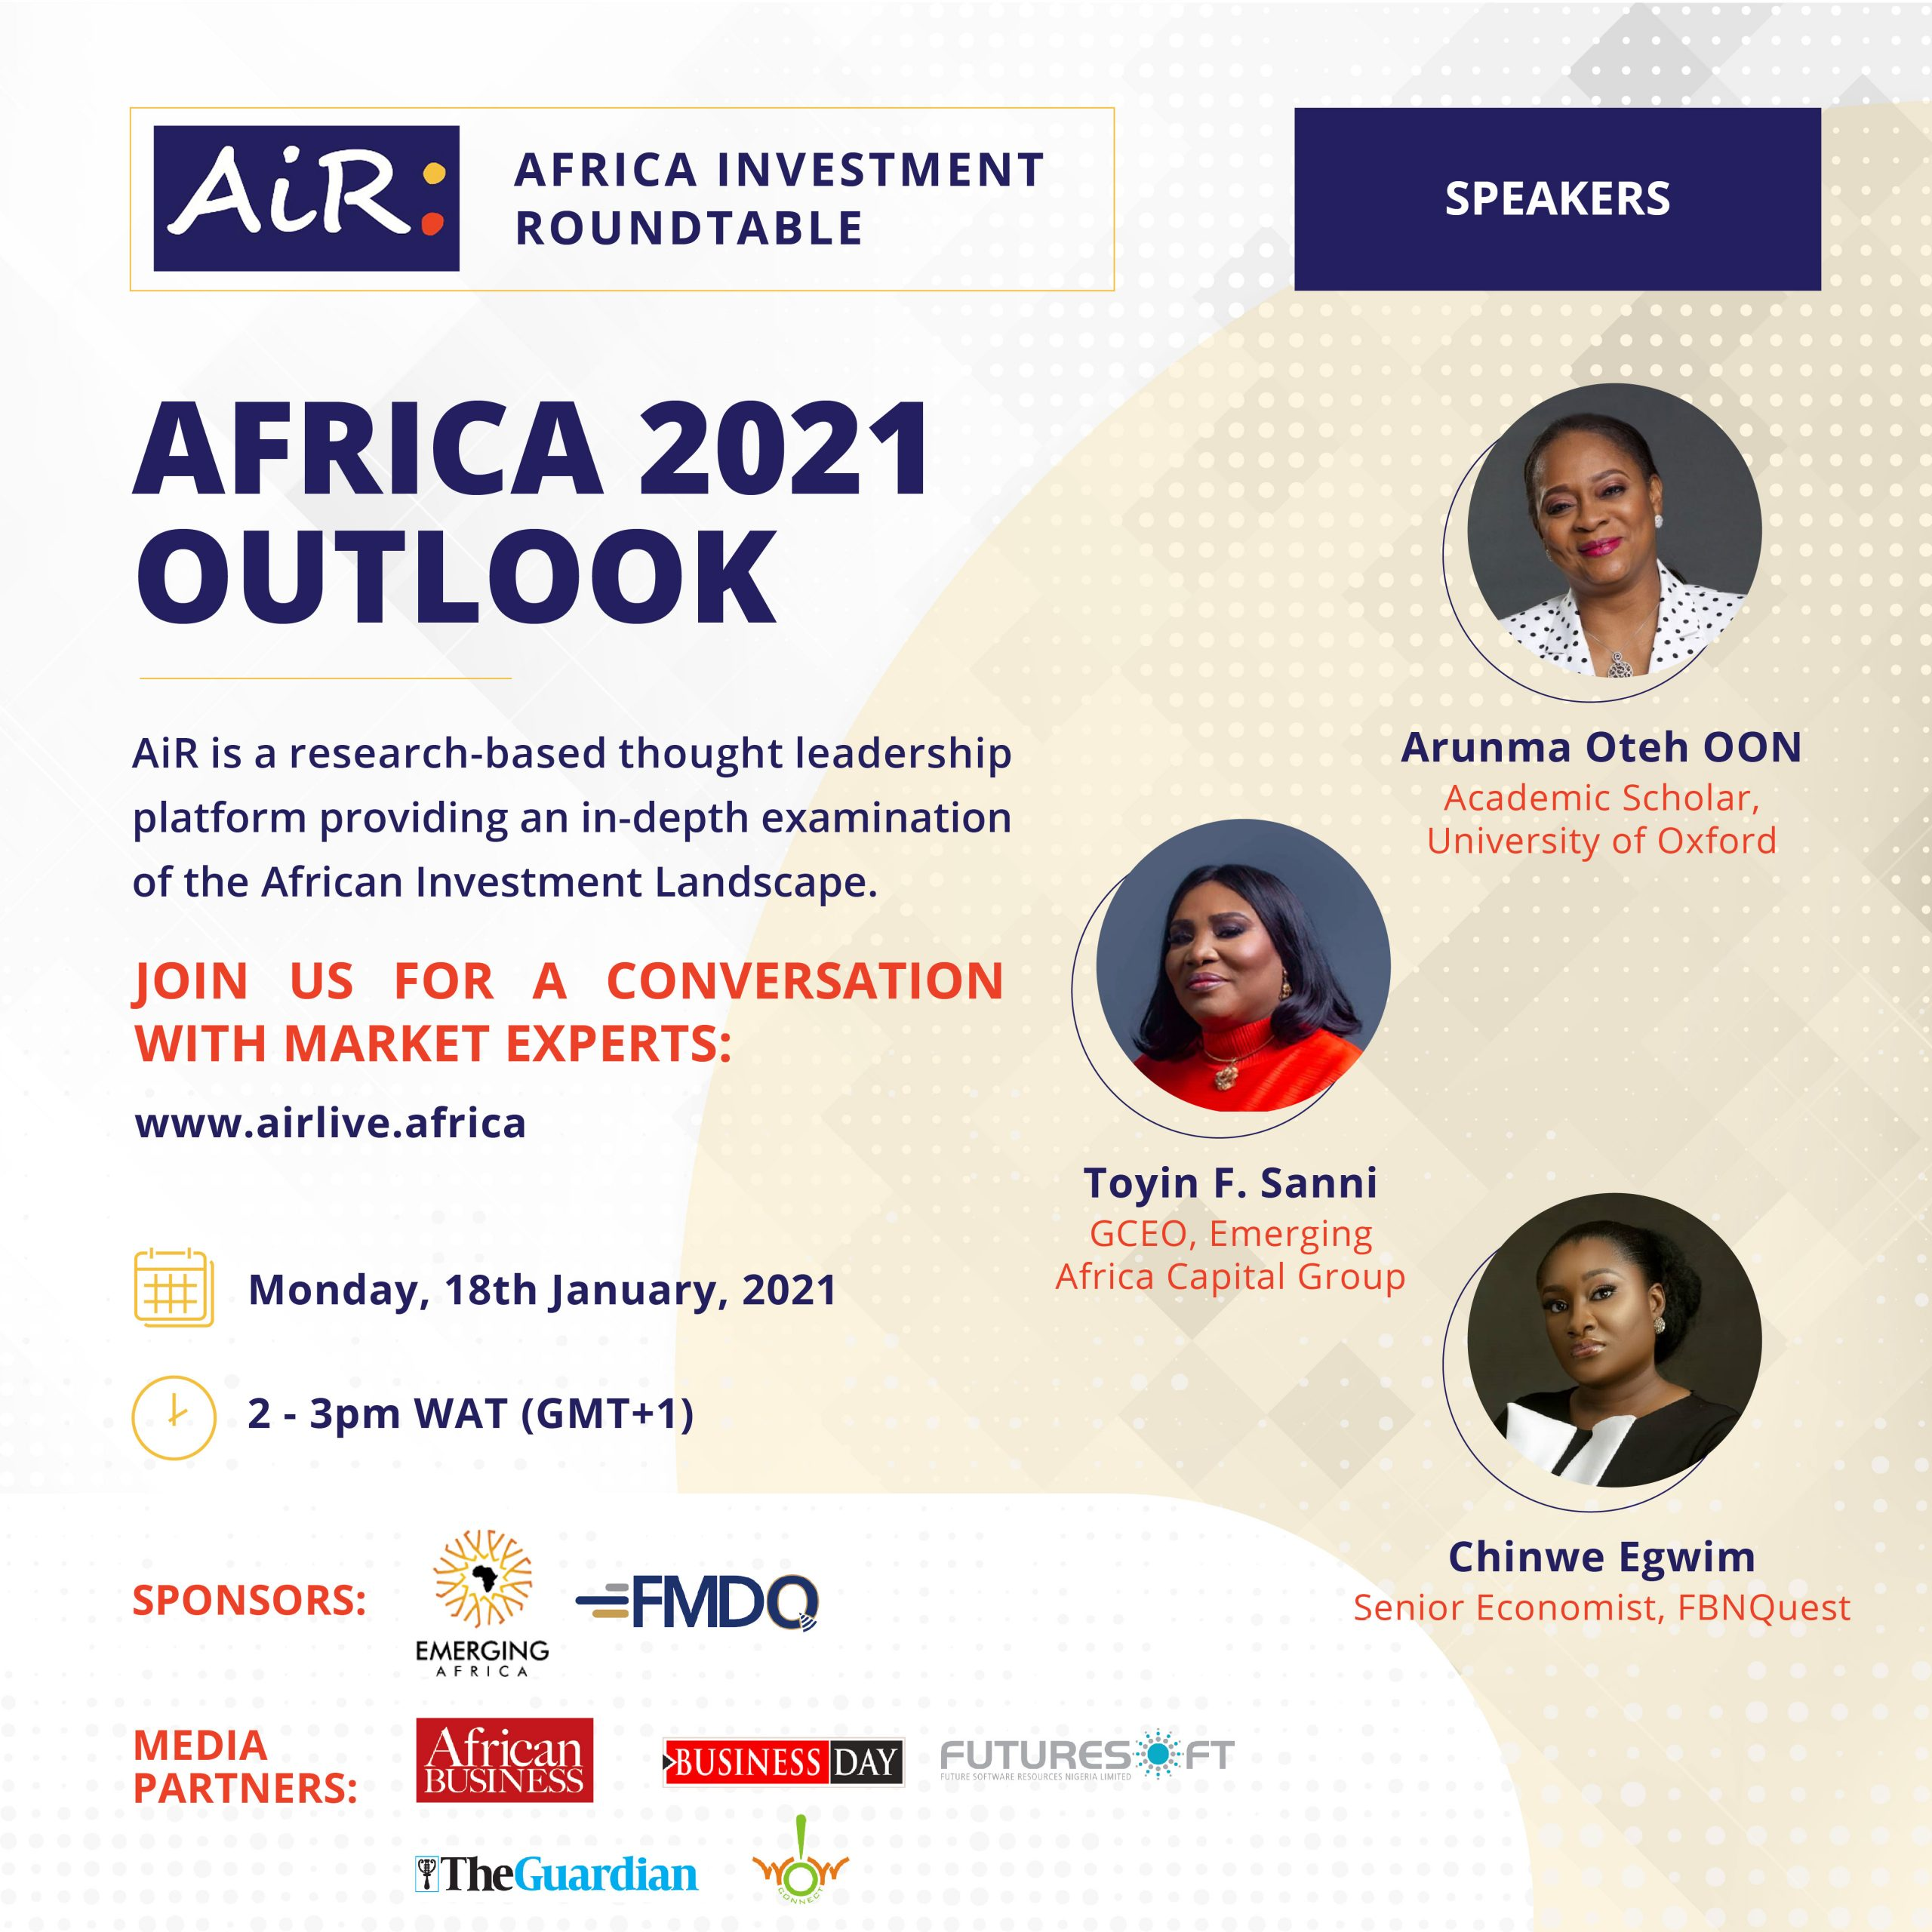 Africa Investment Roundtable